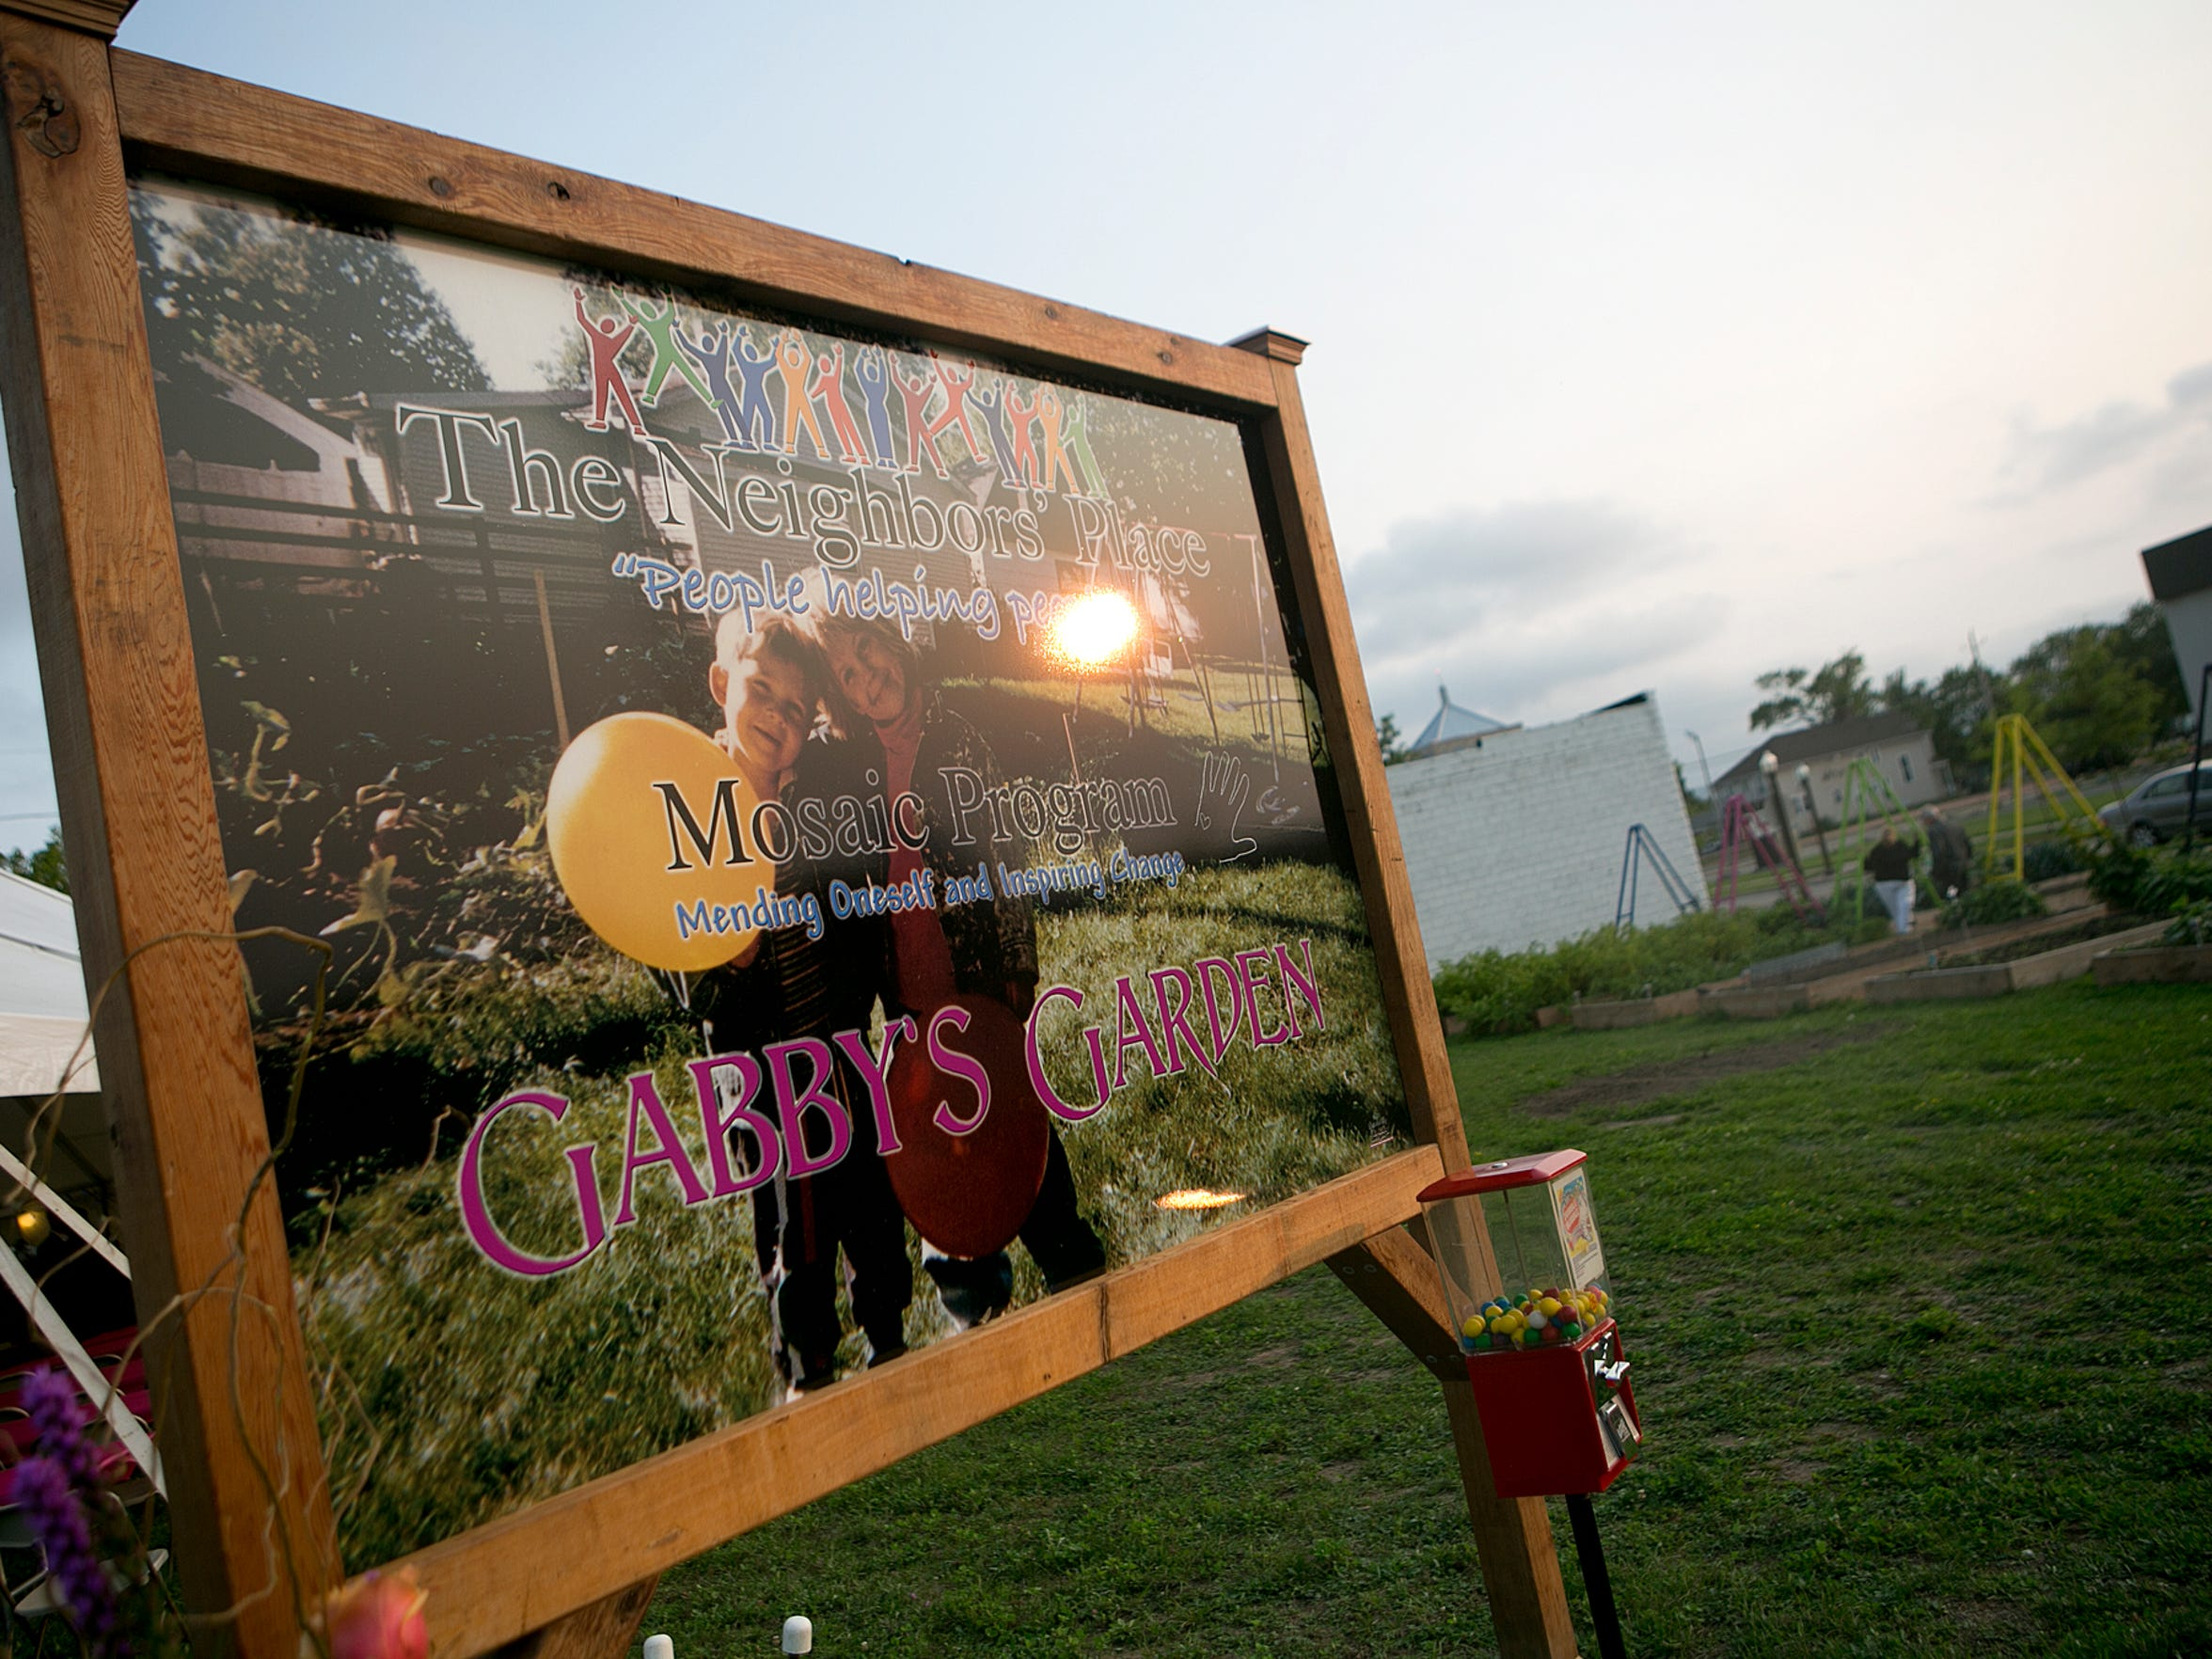 Gabby's Garden on Third Street in Wausau is named after Gabrielle Campo. The garden is part of MOSAIC, or Mending One's Self and Inspiring Change, a program through The Neighbors' Place.